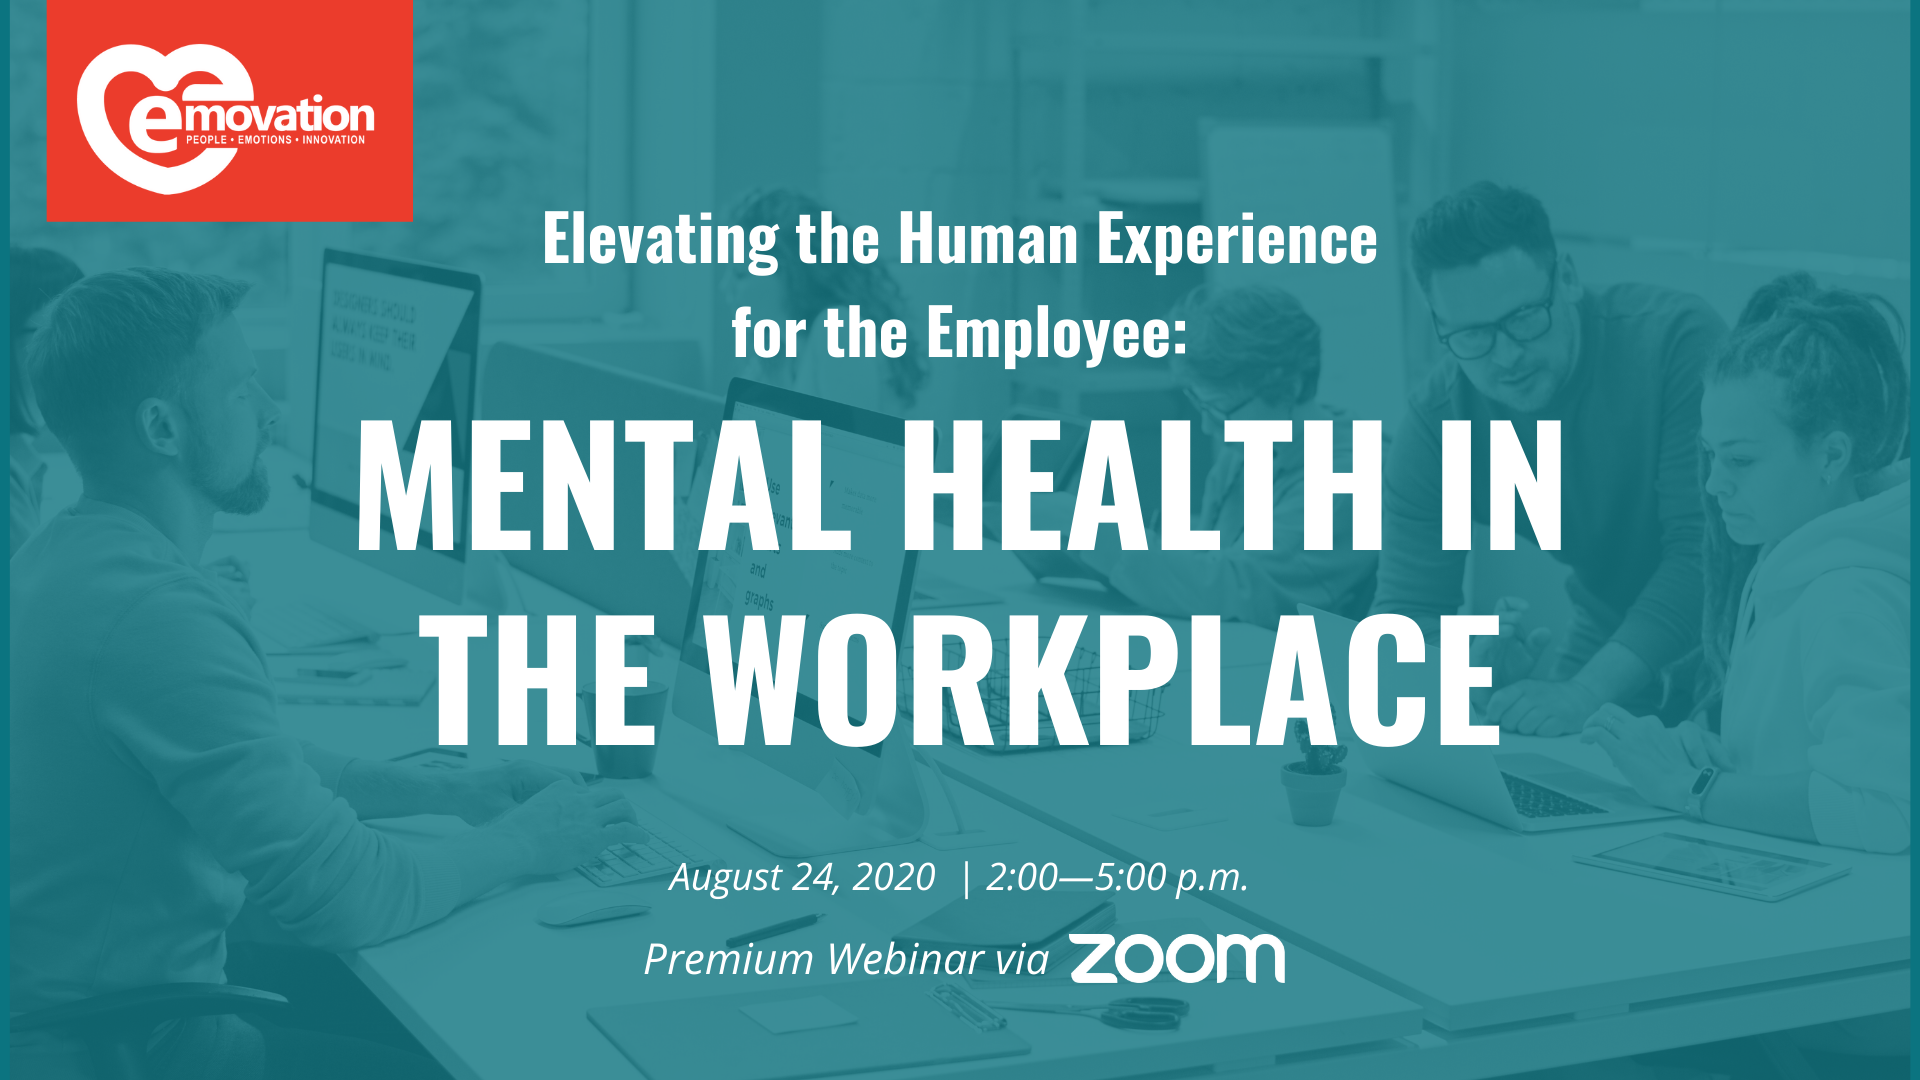 Elevate the Human Experience for the Employee: Mental Health in the Workplace